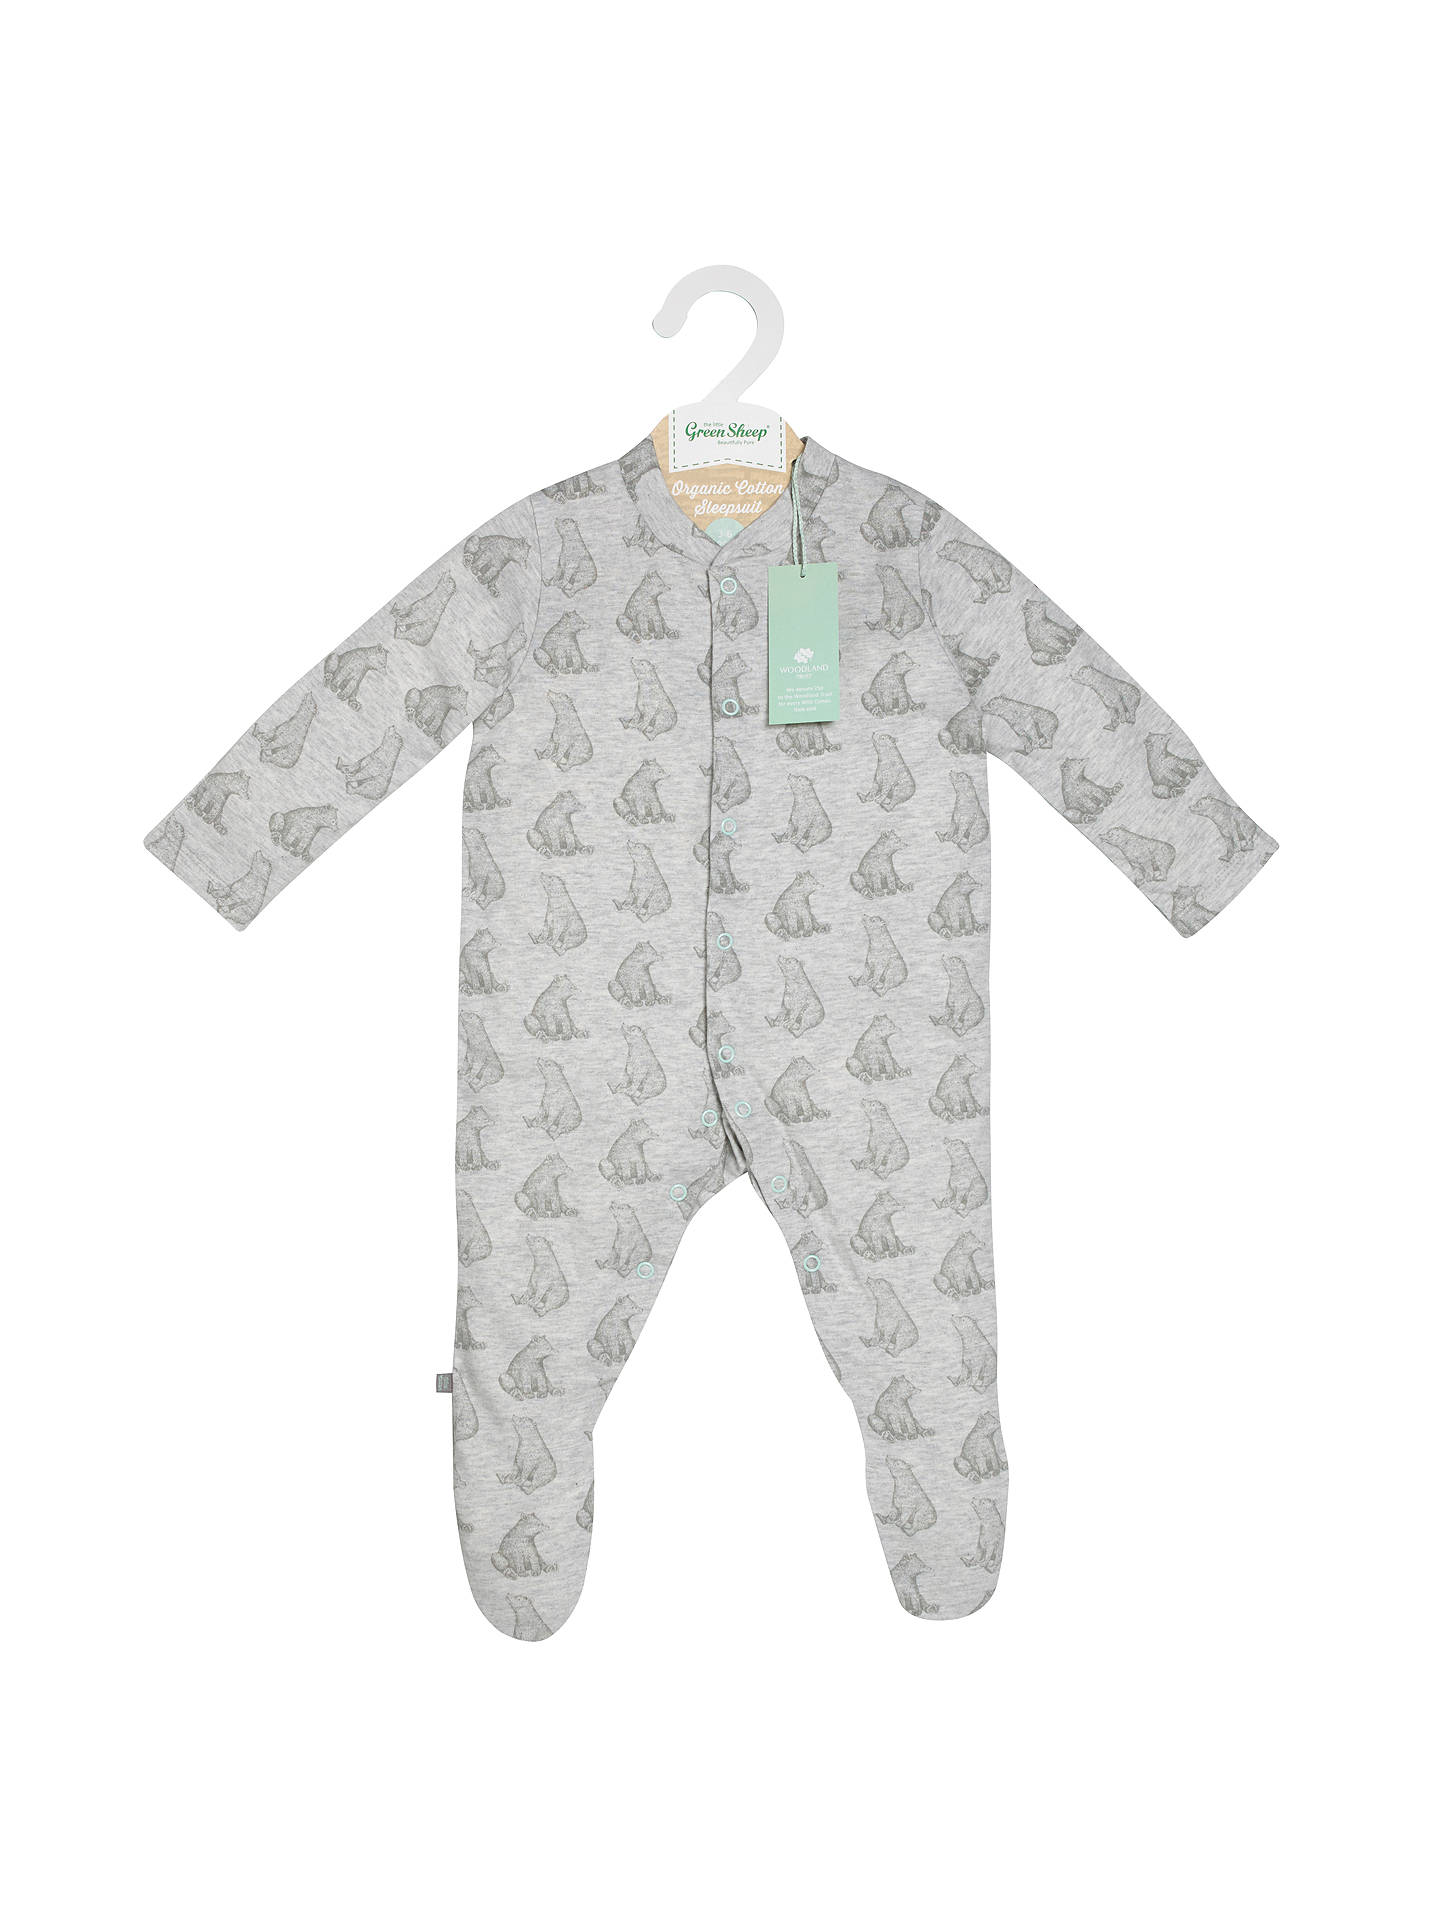 BuyThe Little Green Sheep Baby Bear Print Wild Cotton Sleepsuit, Grey, 3-6 months Online at johnlewis.com